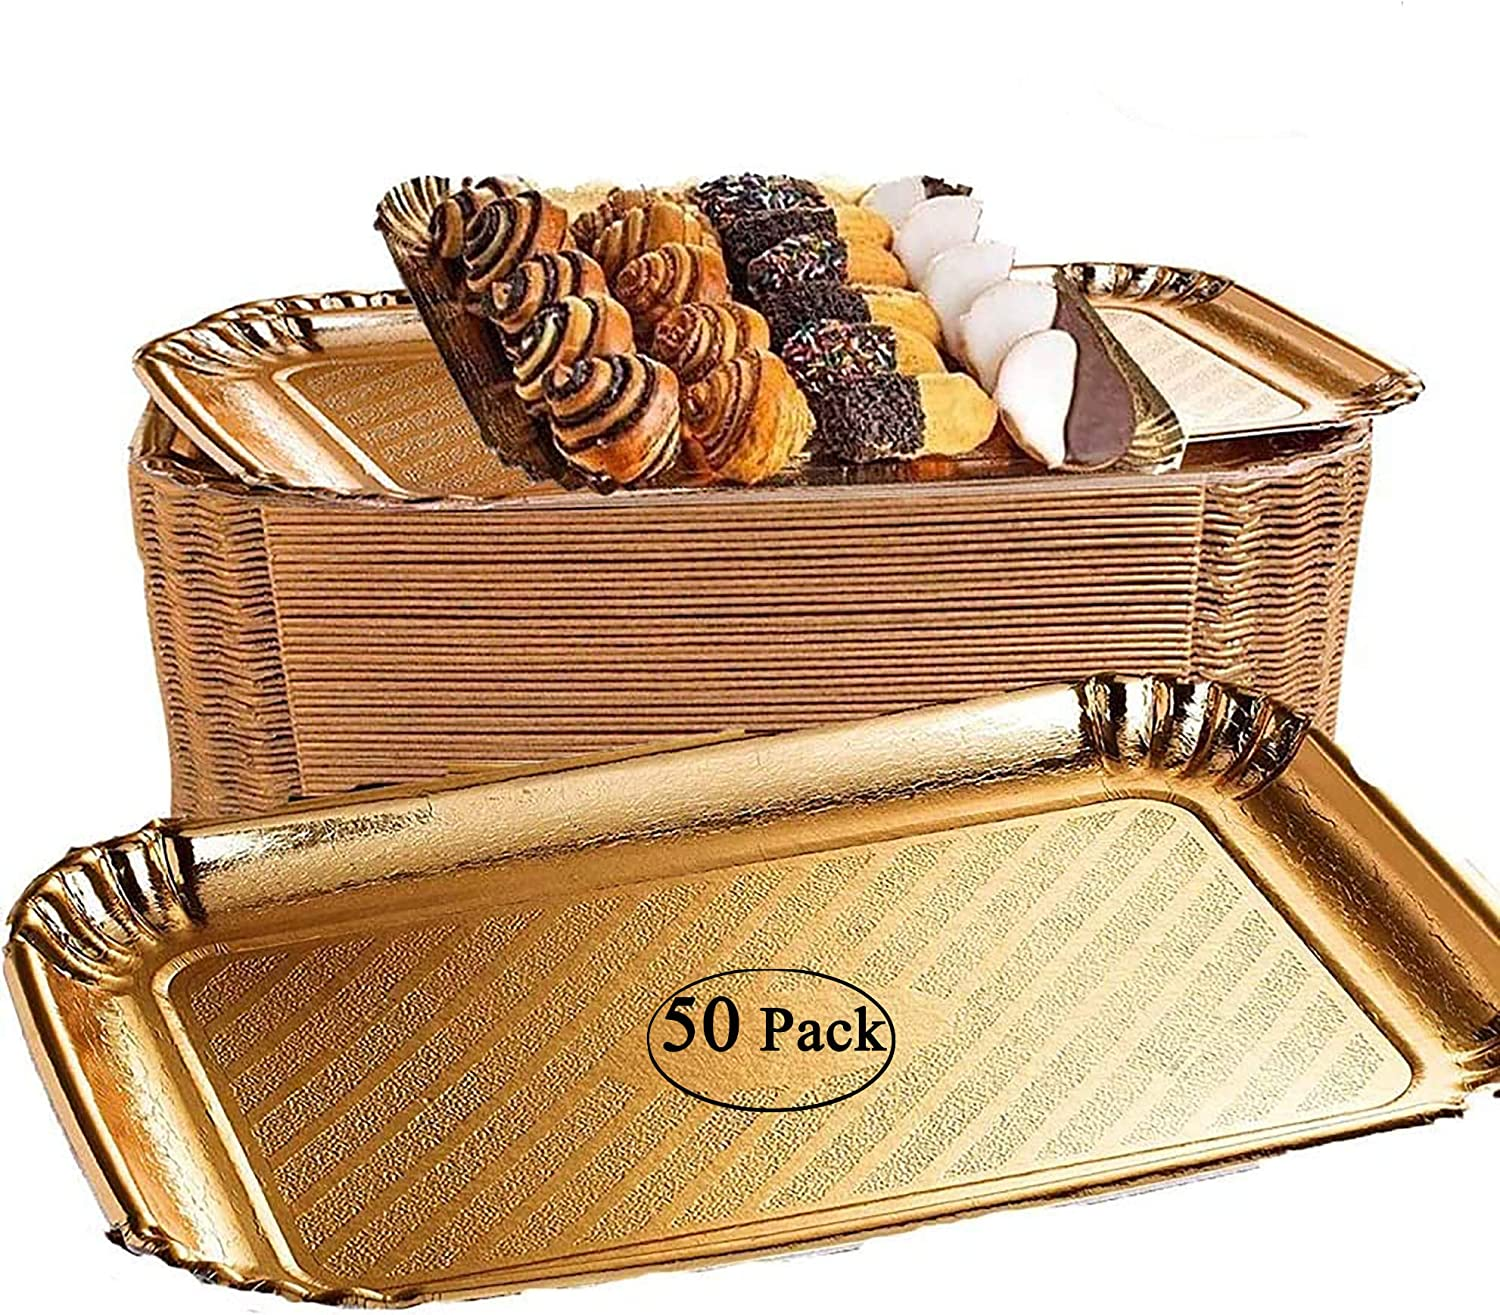 50 Pack gold food tray Gold Cake Trays. Disposable Serving Trays Great for Birthday, Party, Wedding, gold cookie tray gold tray for dessert table 9 x 13 (50)